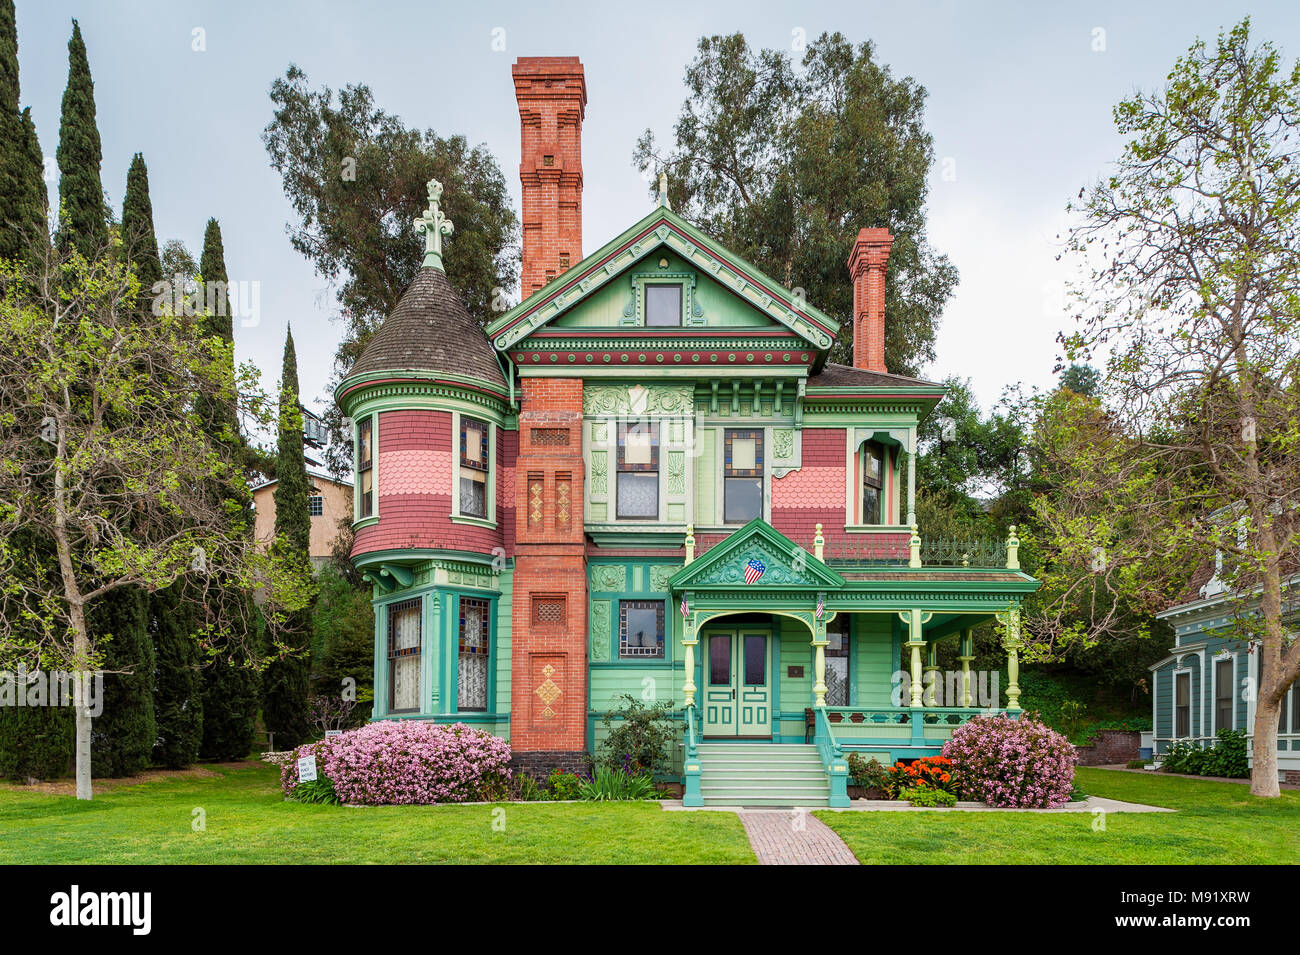 Hale House in Los Angeles California, a Queen Anne style Victorian mansion built in 1887 - Stock Image